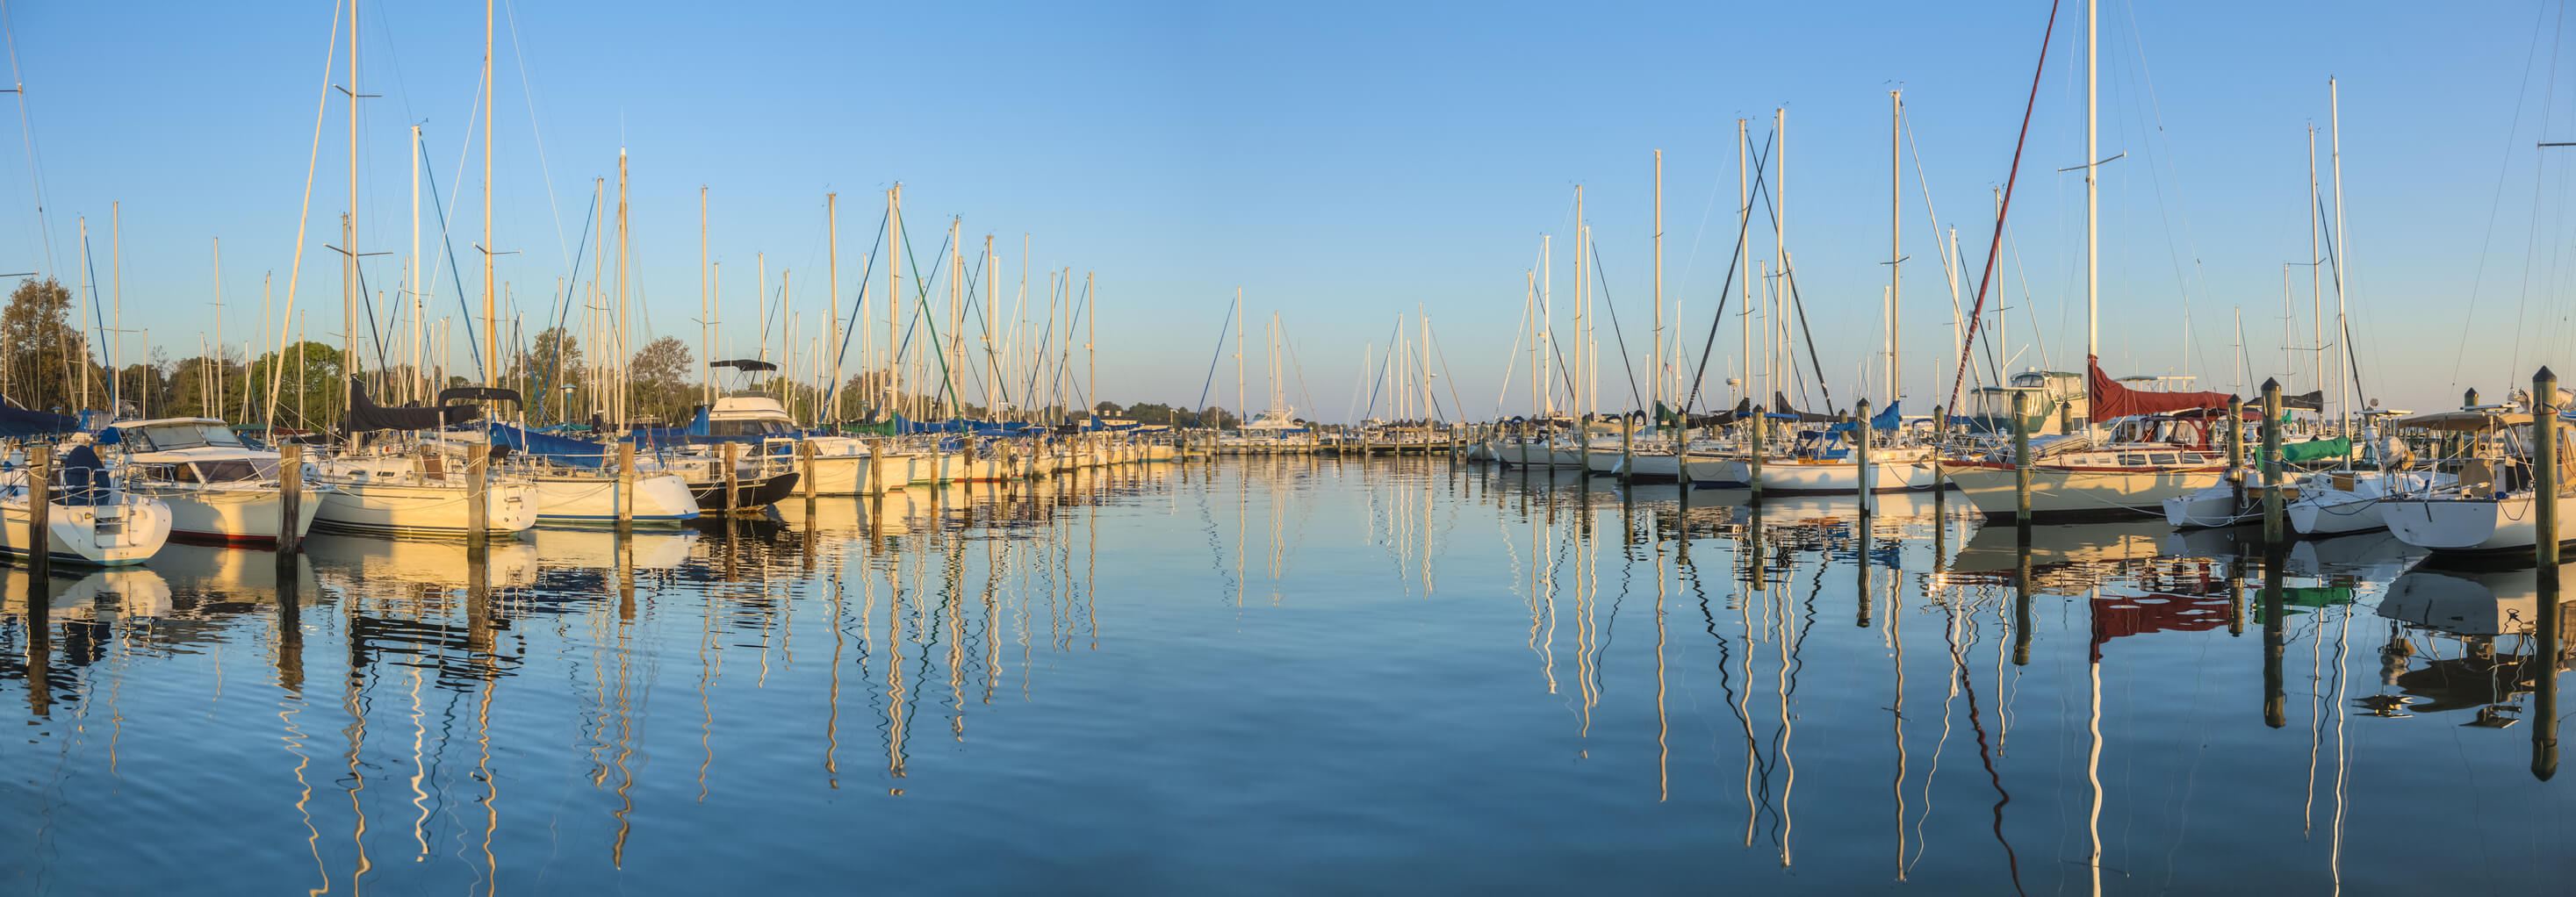 Sailboats in Port